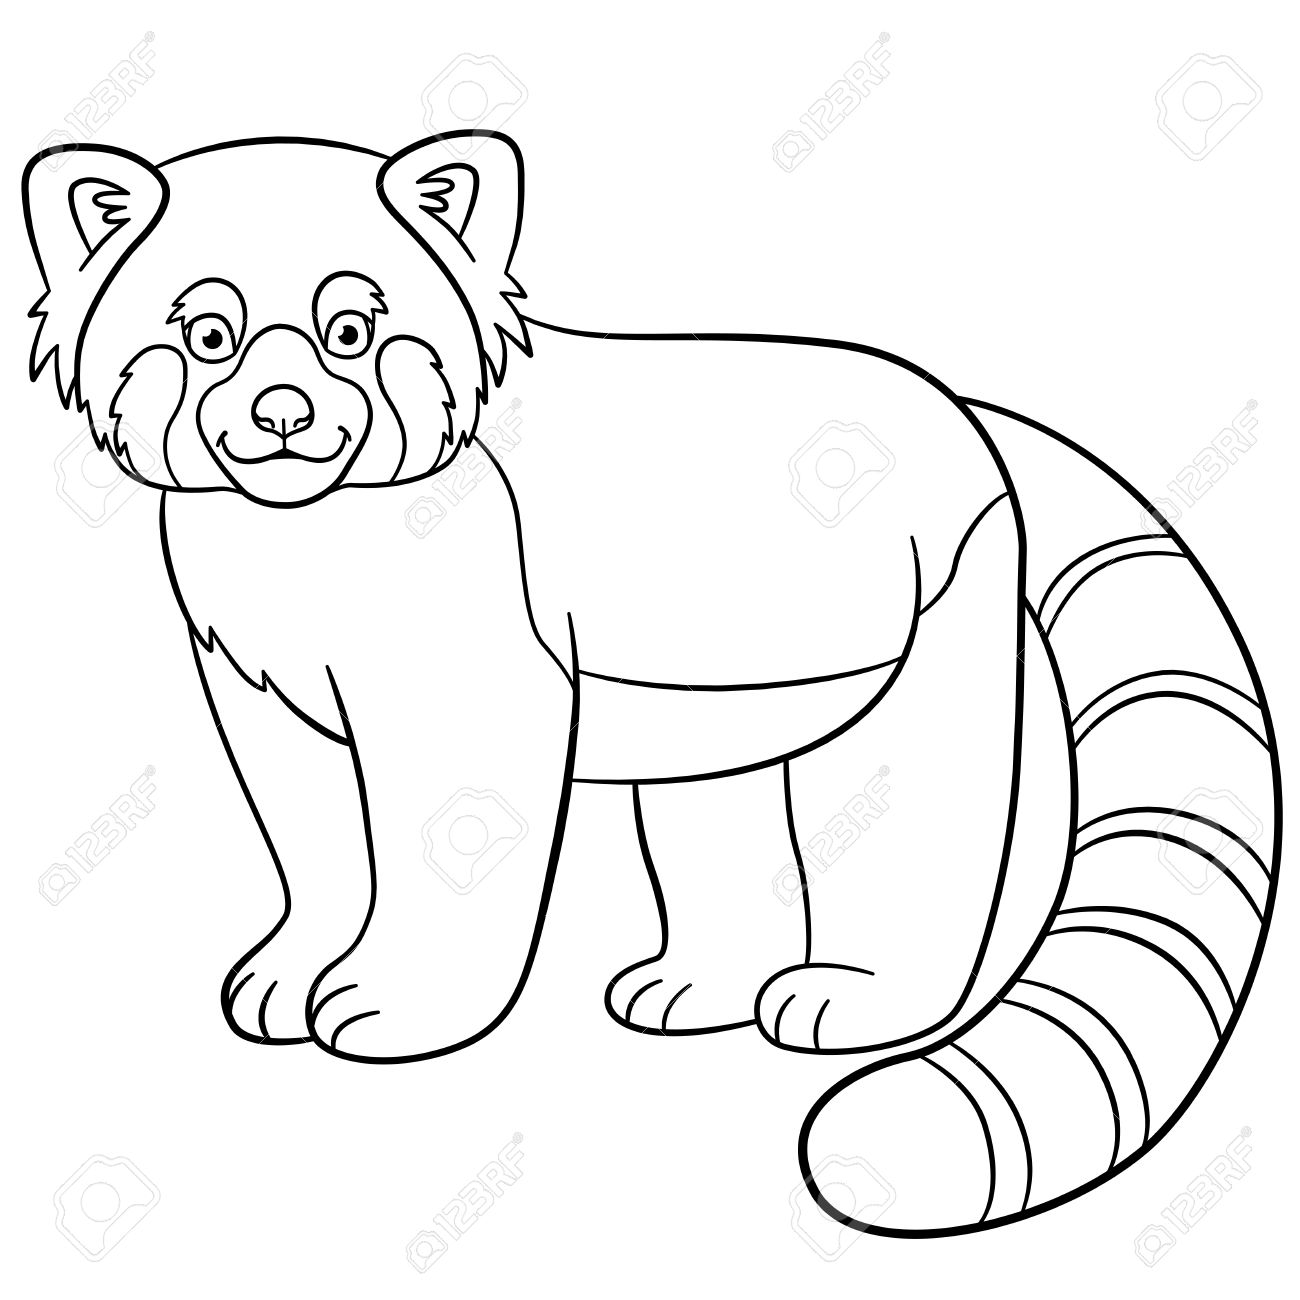 red panda face coloring page free printable panda coloring pages for kids panda coloring page red face